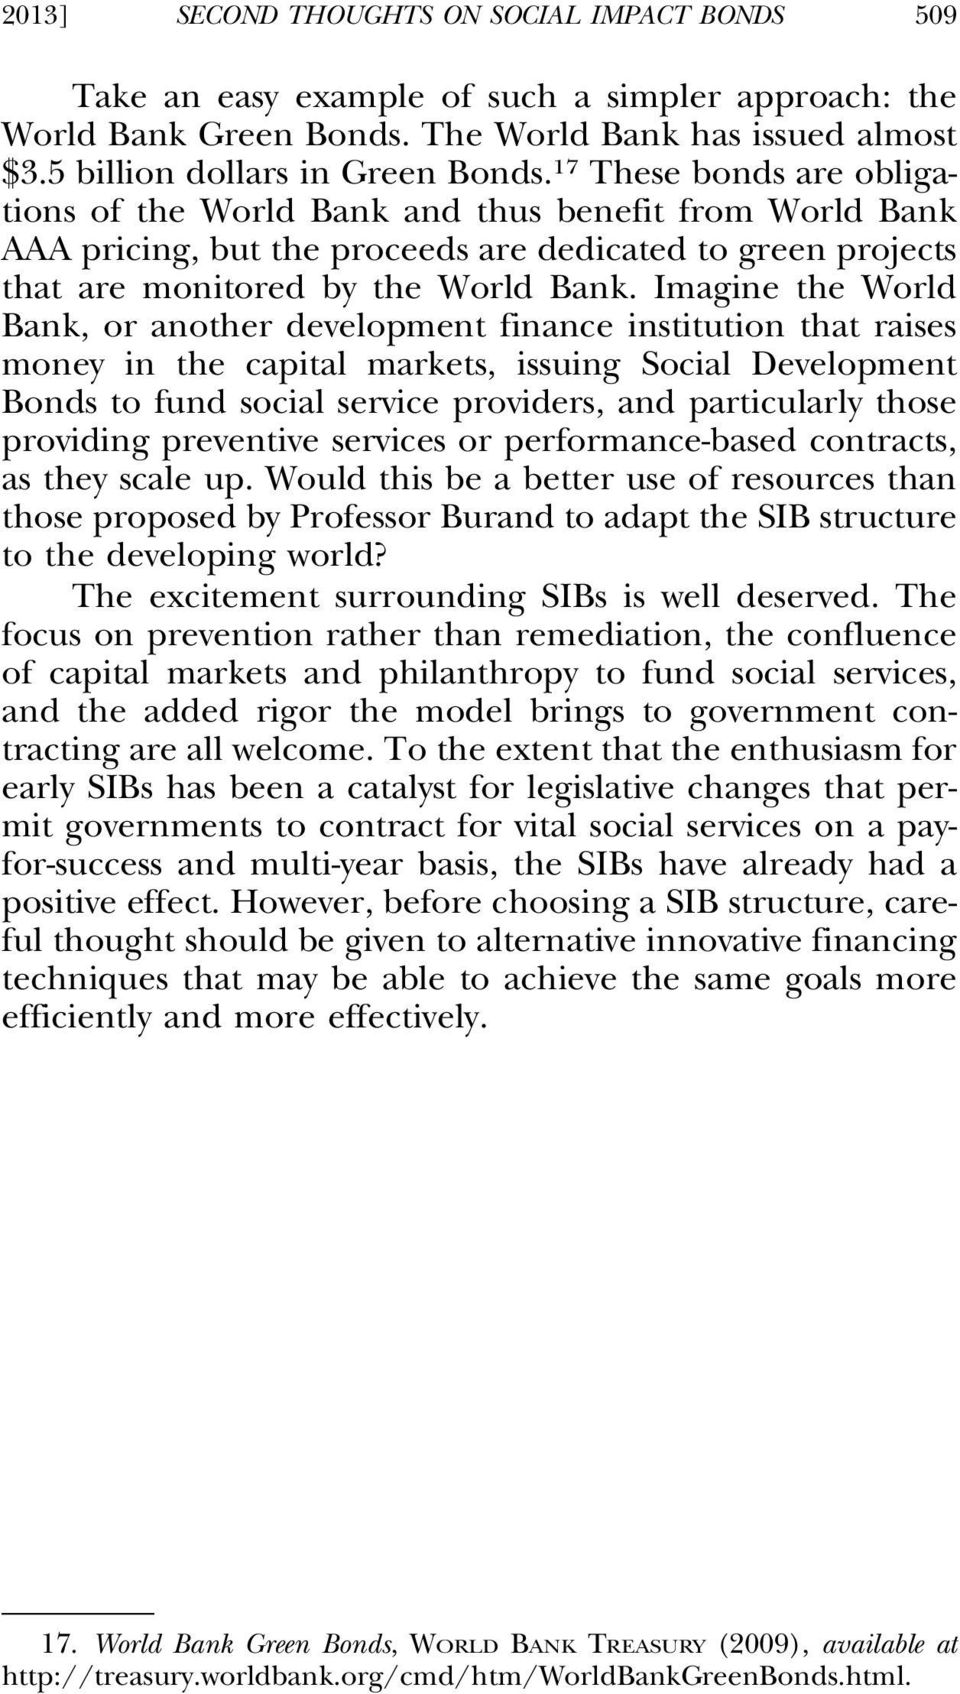 Imagine the World Bank, or another development finance institution that raises money in the capital markets, issuing Social Development Bonds to fund social service providers, and particularly those